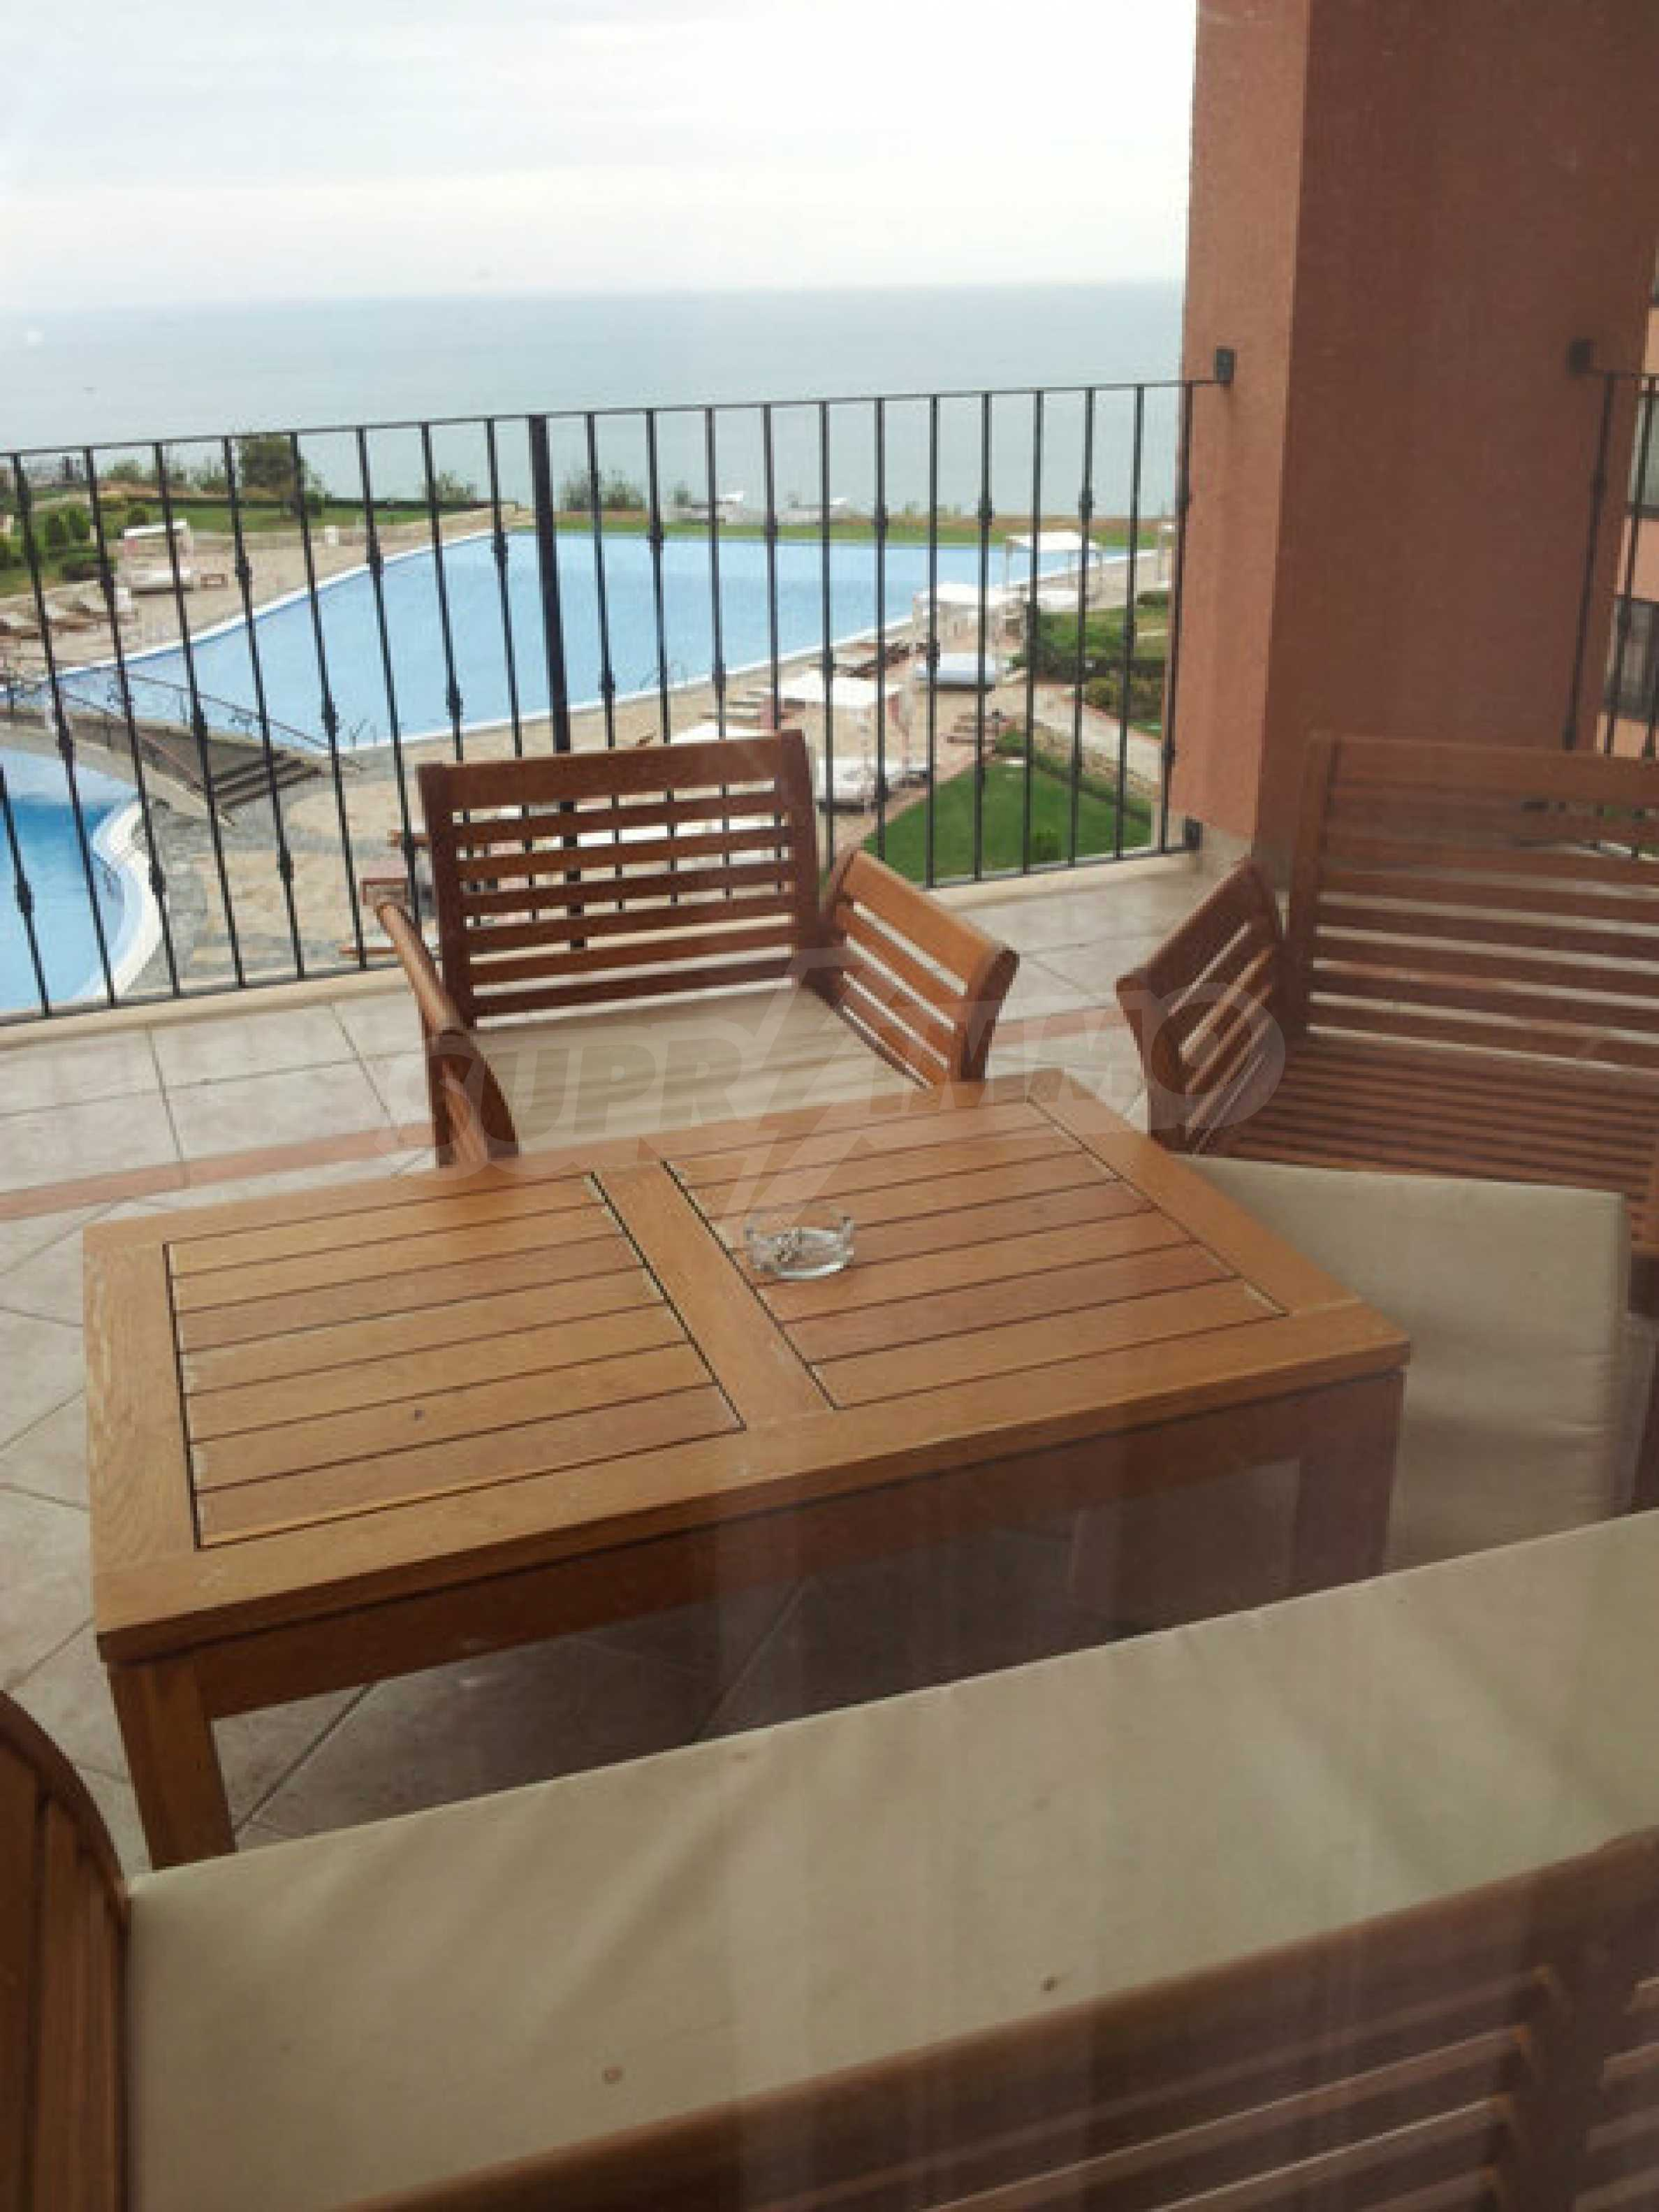 Large 2-bedroom apartment in Kaliakria complex 10